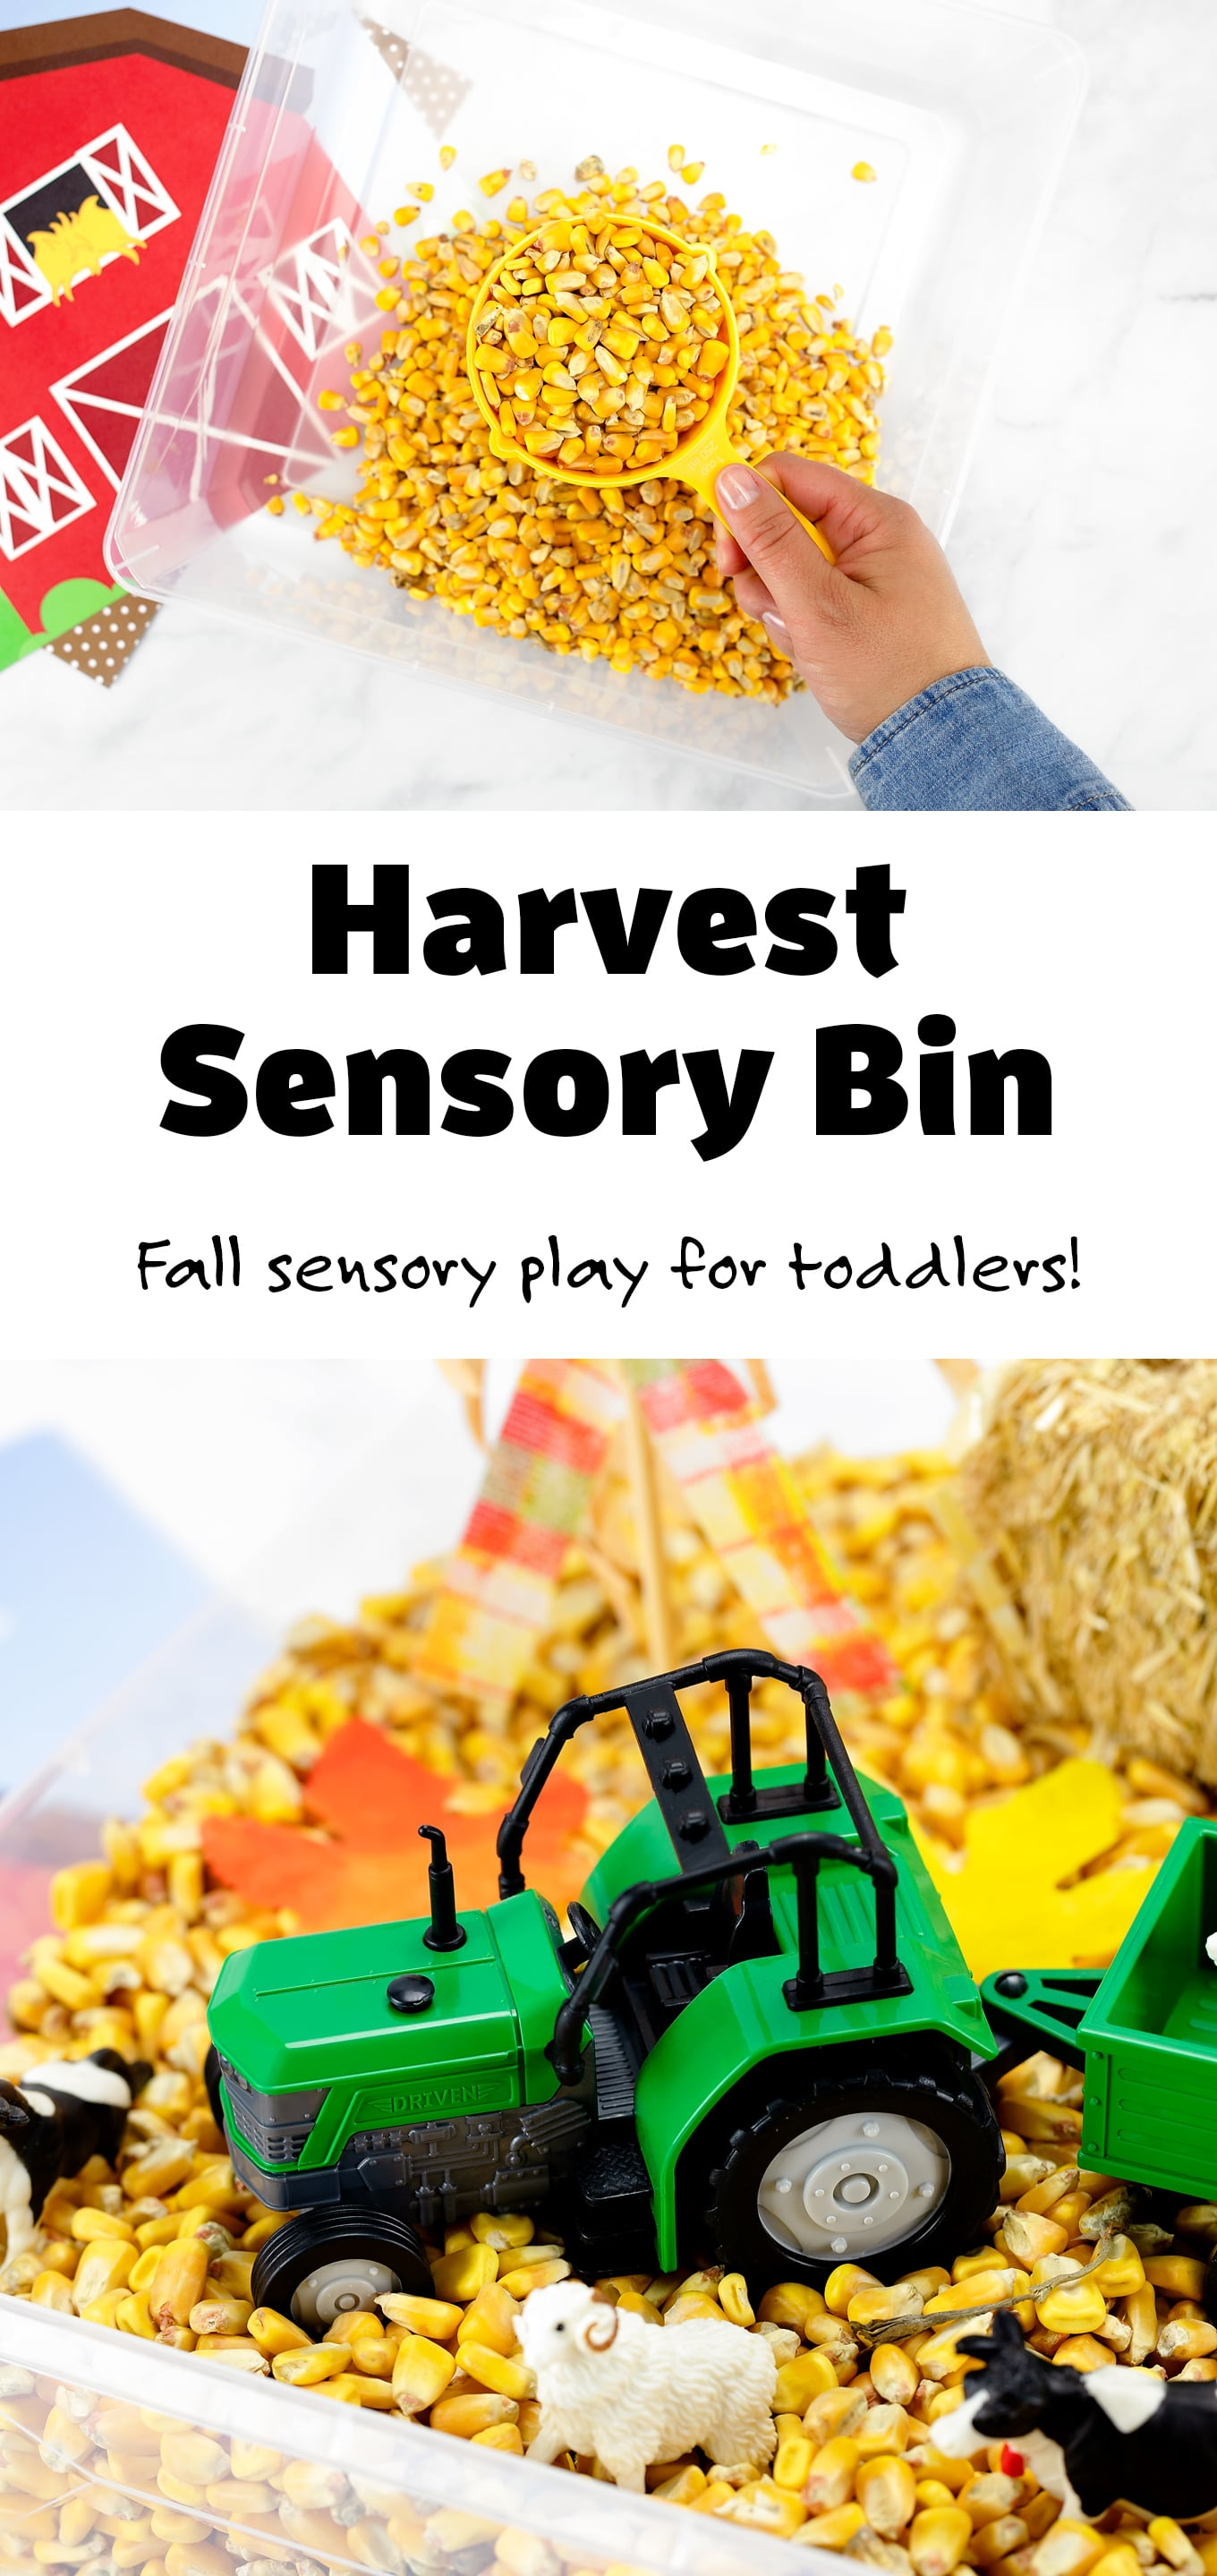 This Harvest Sensory Bin is a fun way for toddlers, preschoolers, kindergartners, and older kids to explore textures and practice fine-motor skills! #harvest #sensorybin #fall #toddlers #kids #preschool via @firefliesandmudpies